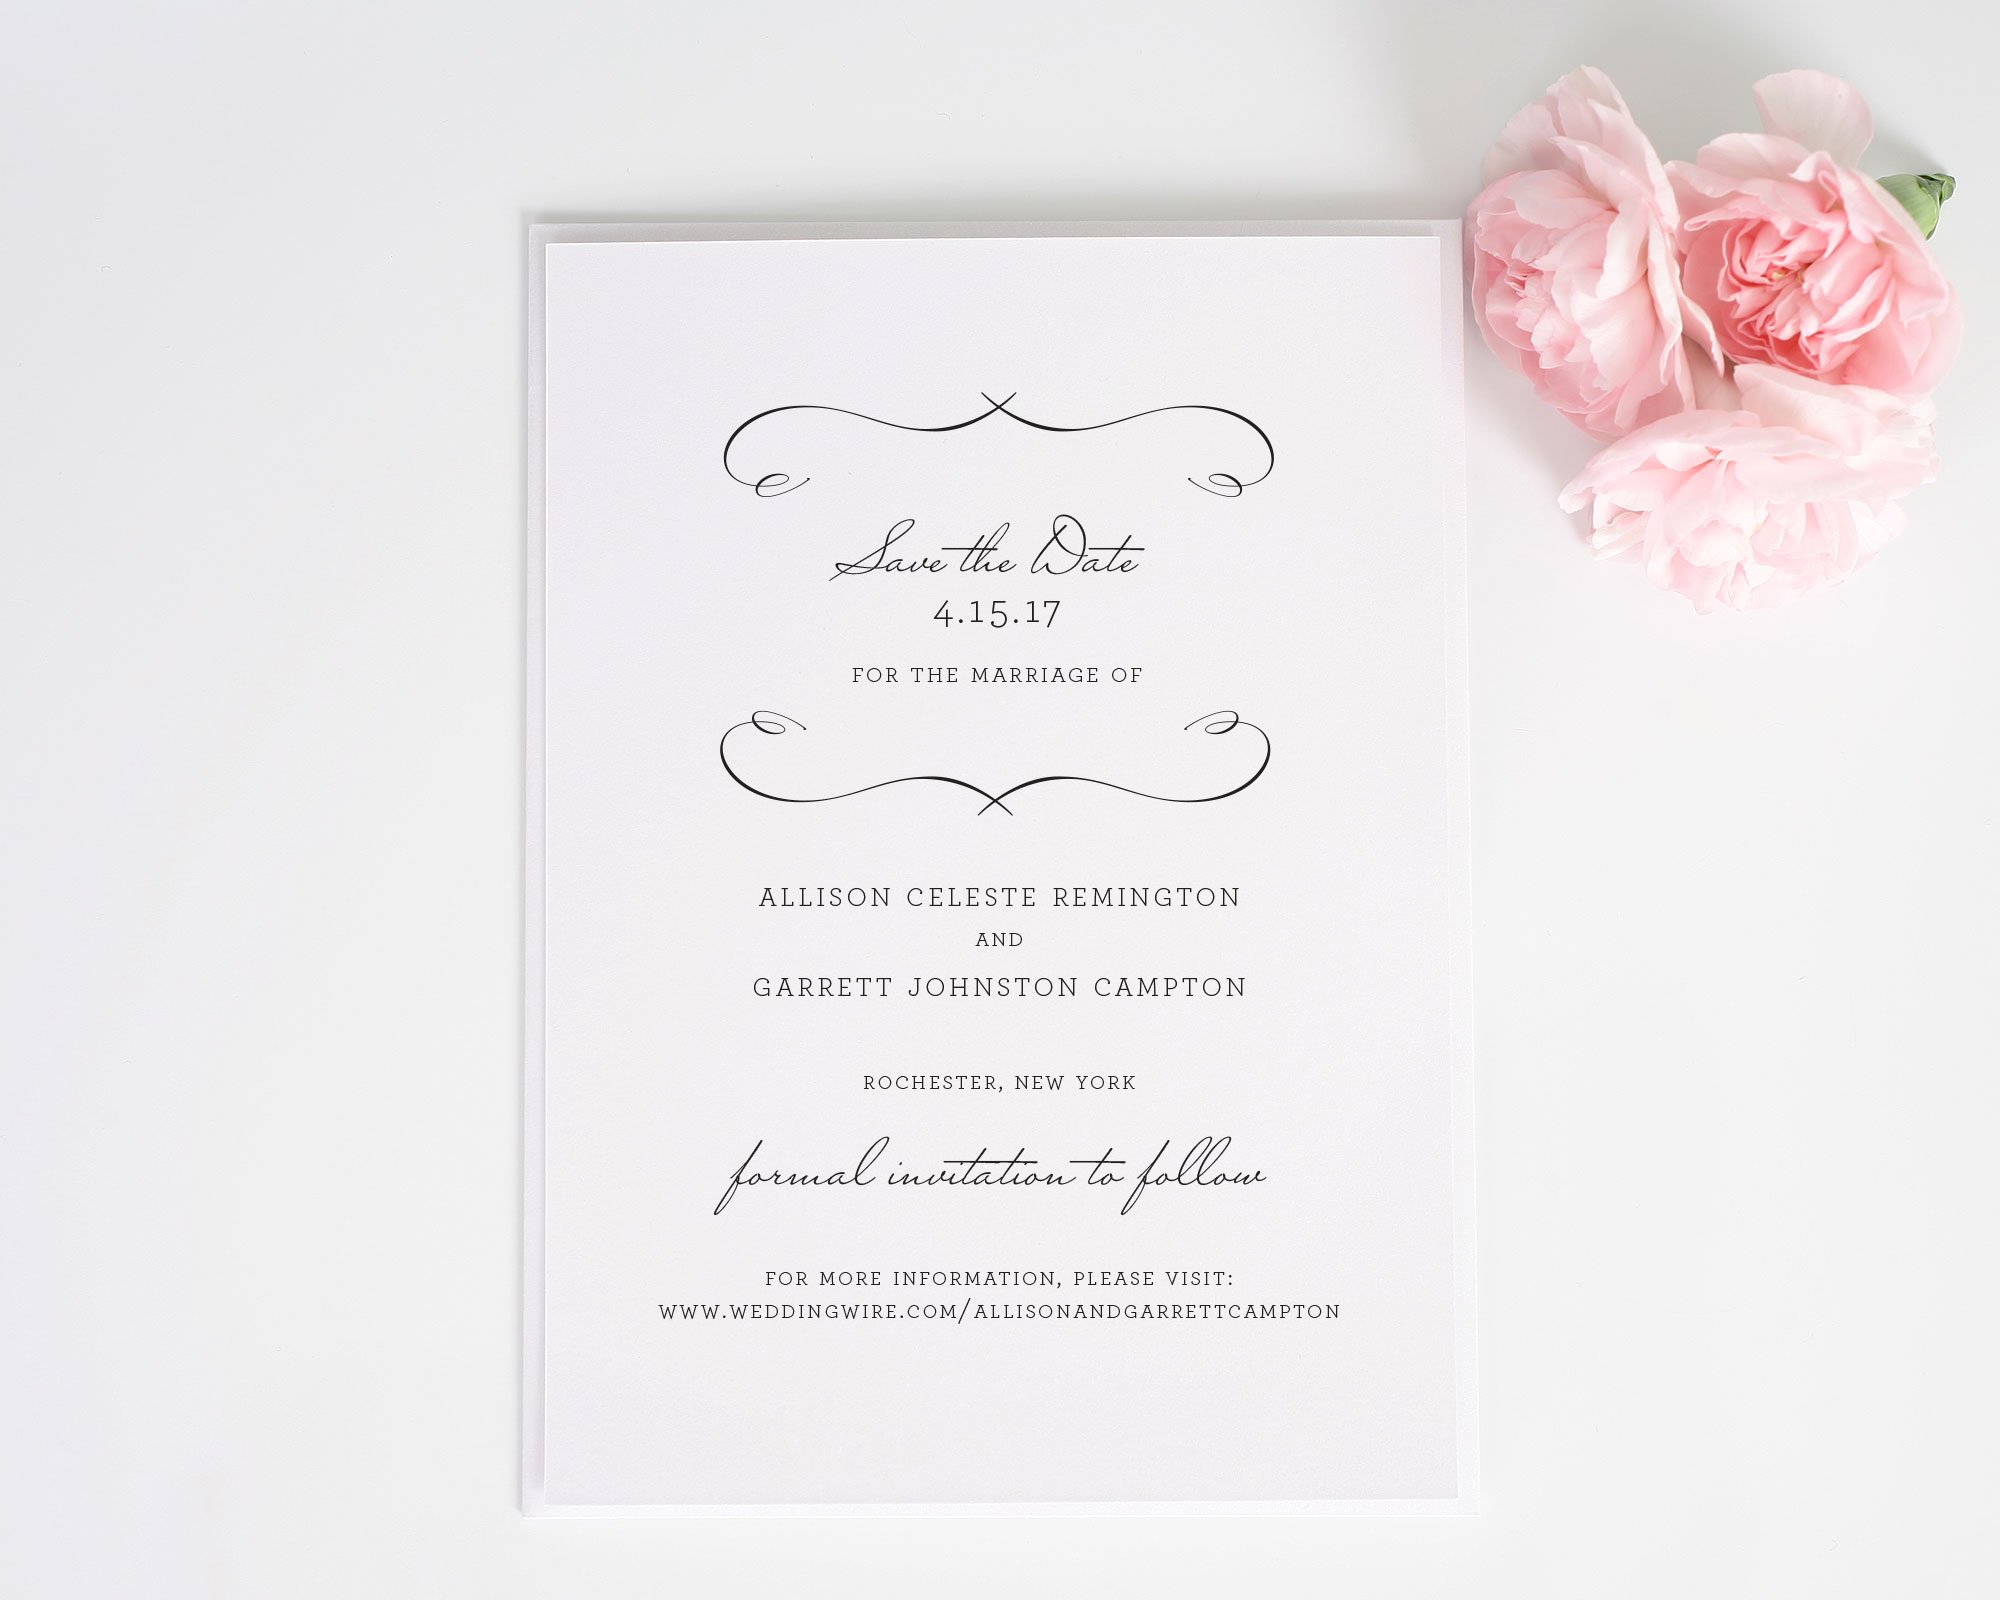 French Country Save the Date Cards - Save the Date Cards by Shine